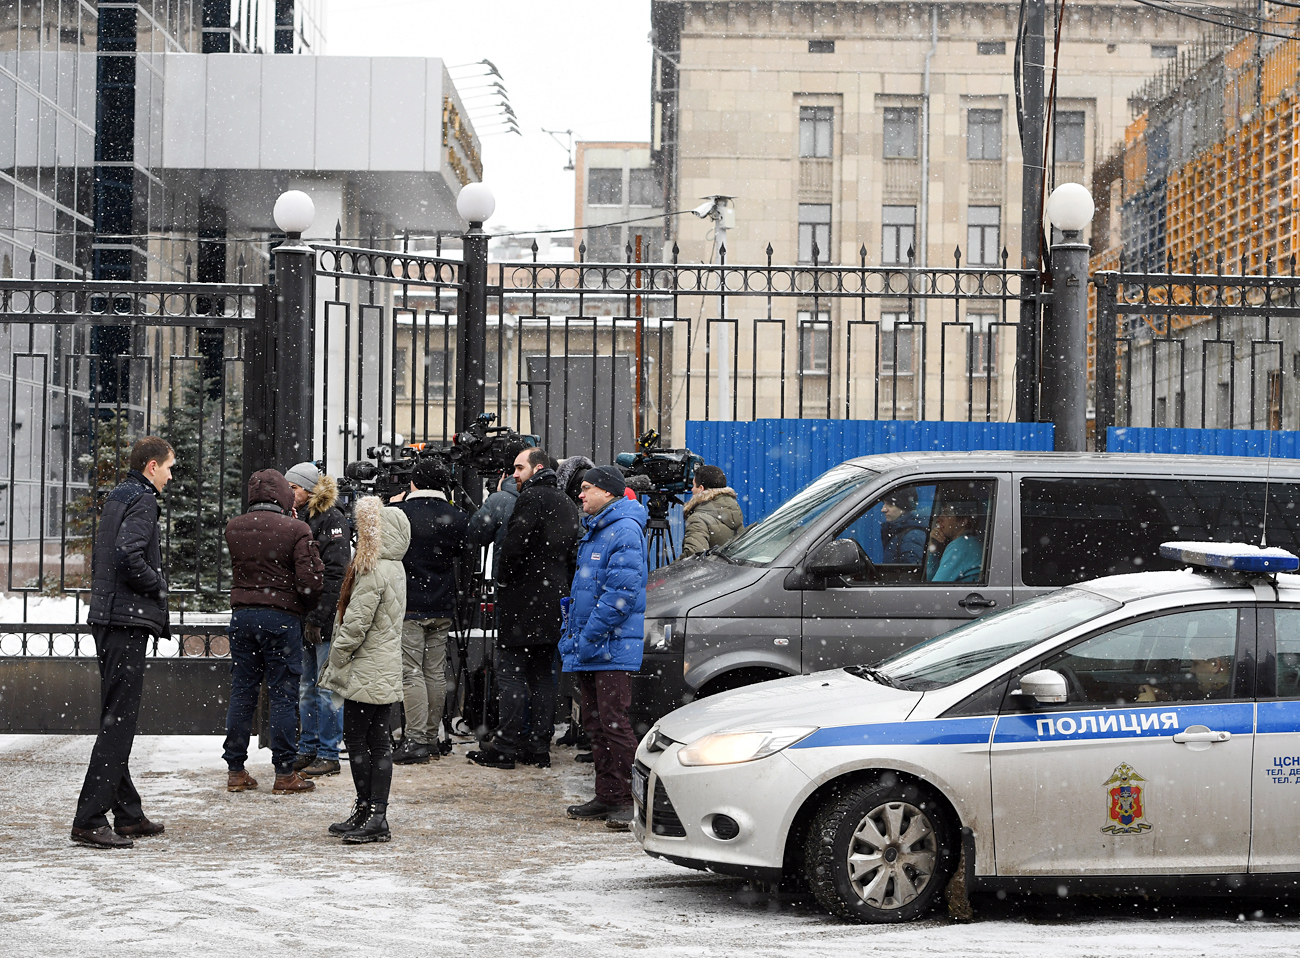 Situation near Russian Investigative Committee and Ministry of Economic Development after Alexei Ulyukayev's arrest.